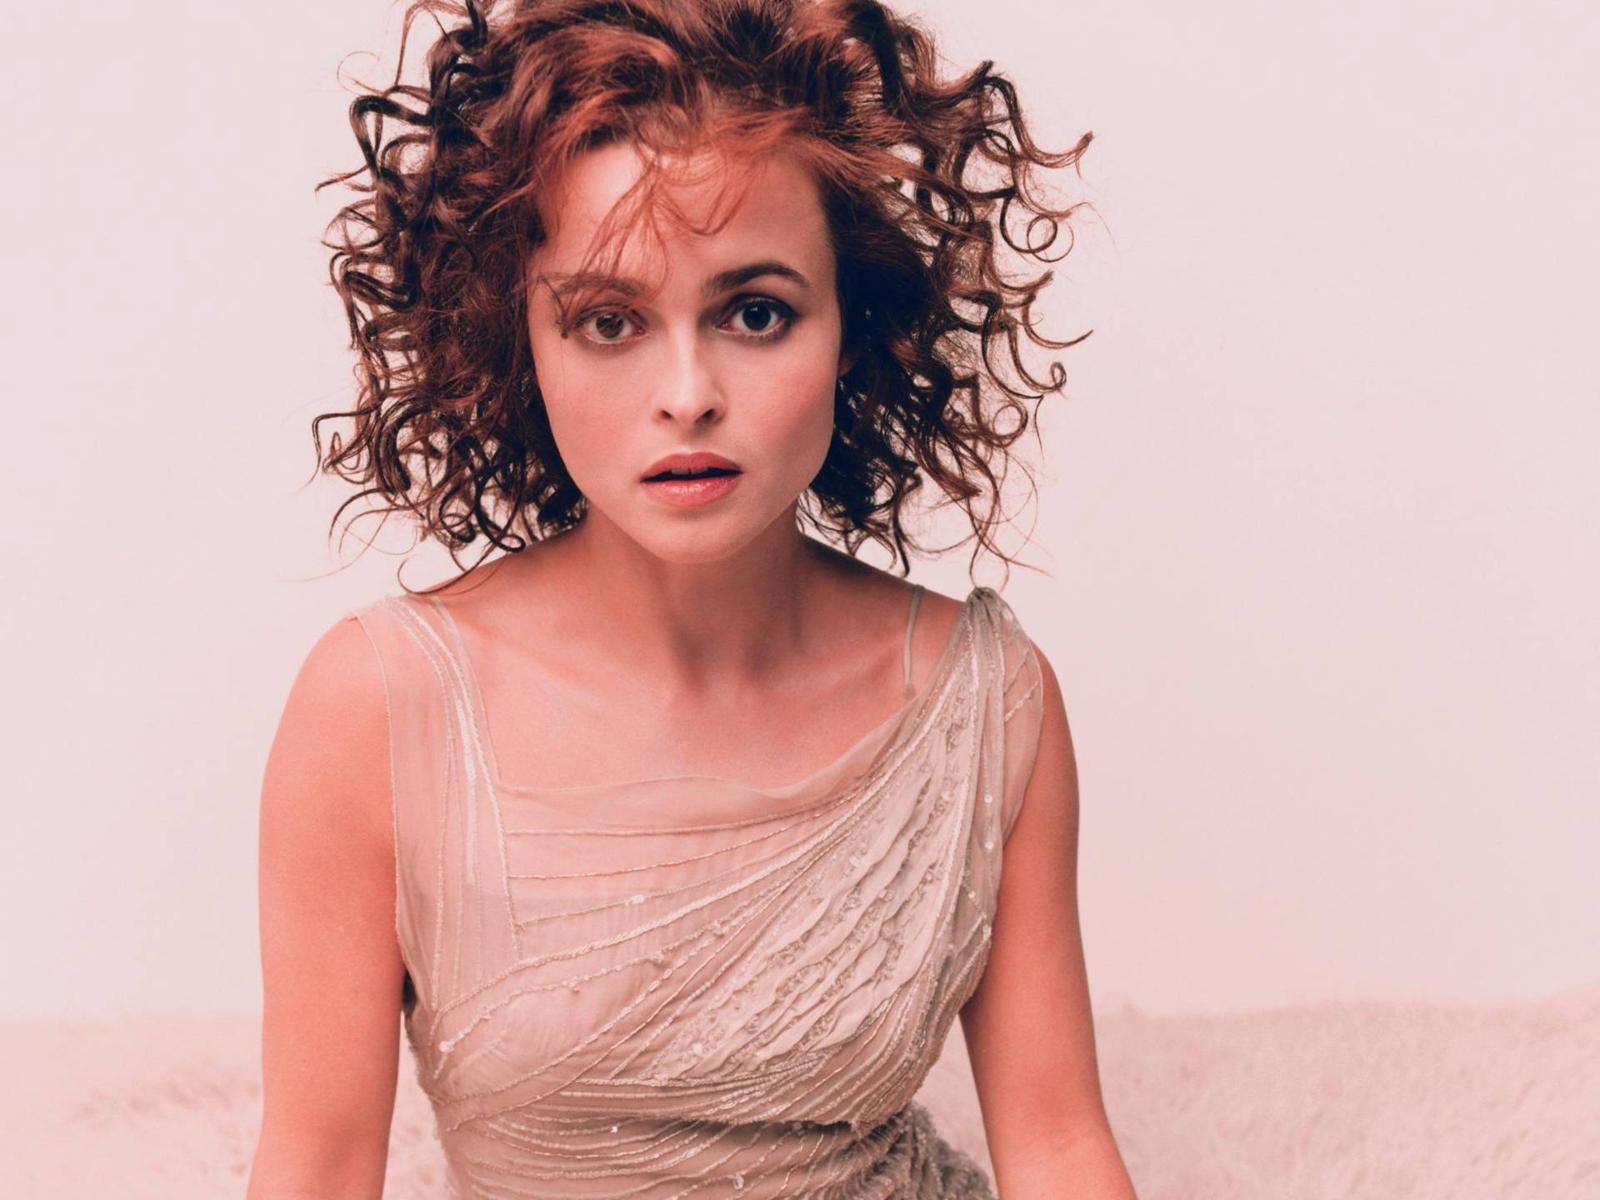 Hairstyles For Men Helena Bonham Carter Hair Halloween